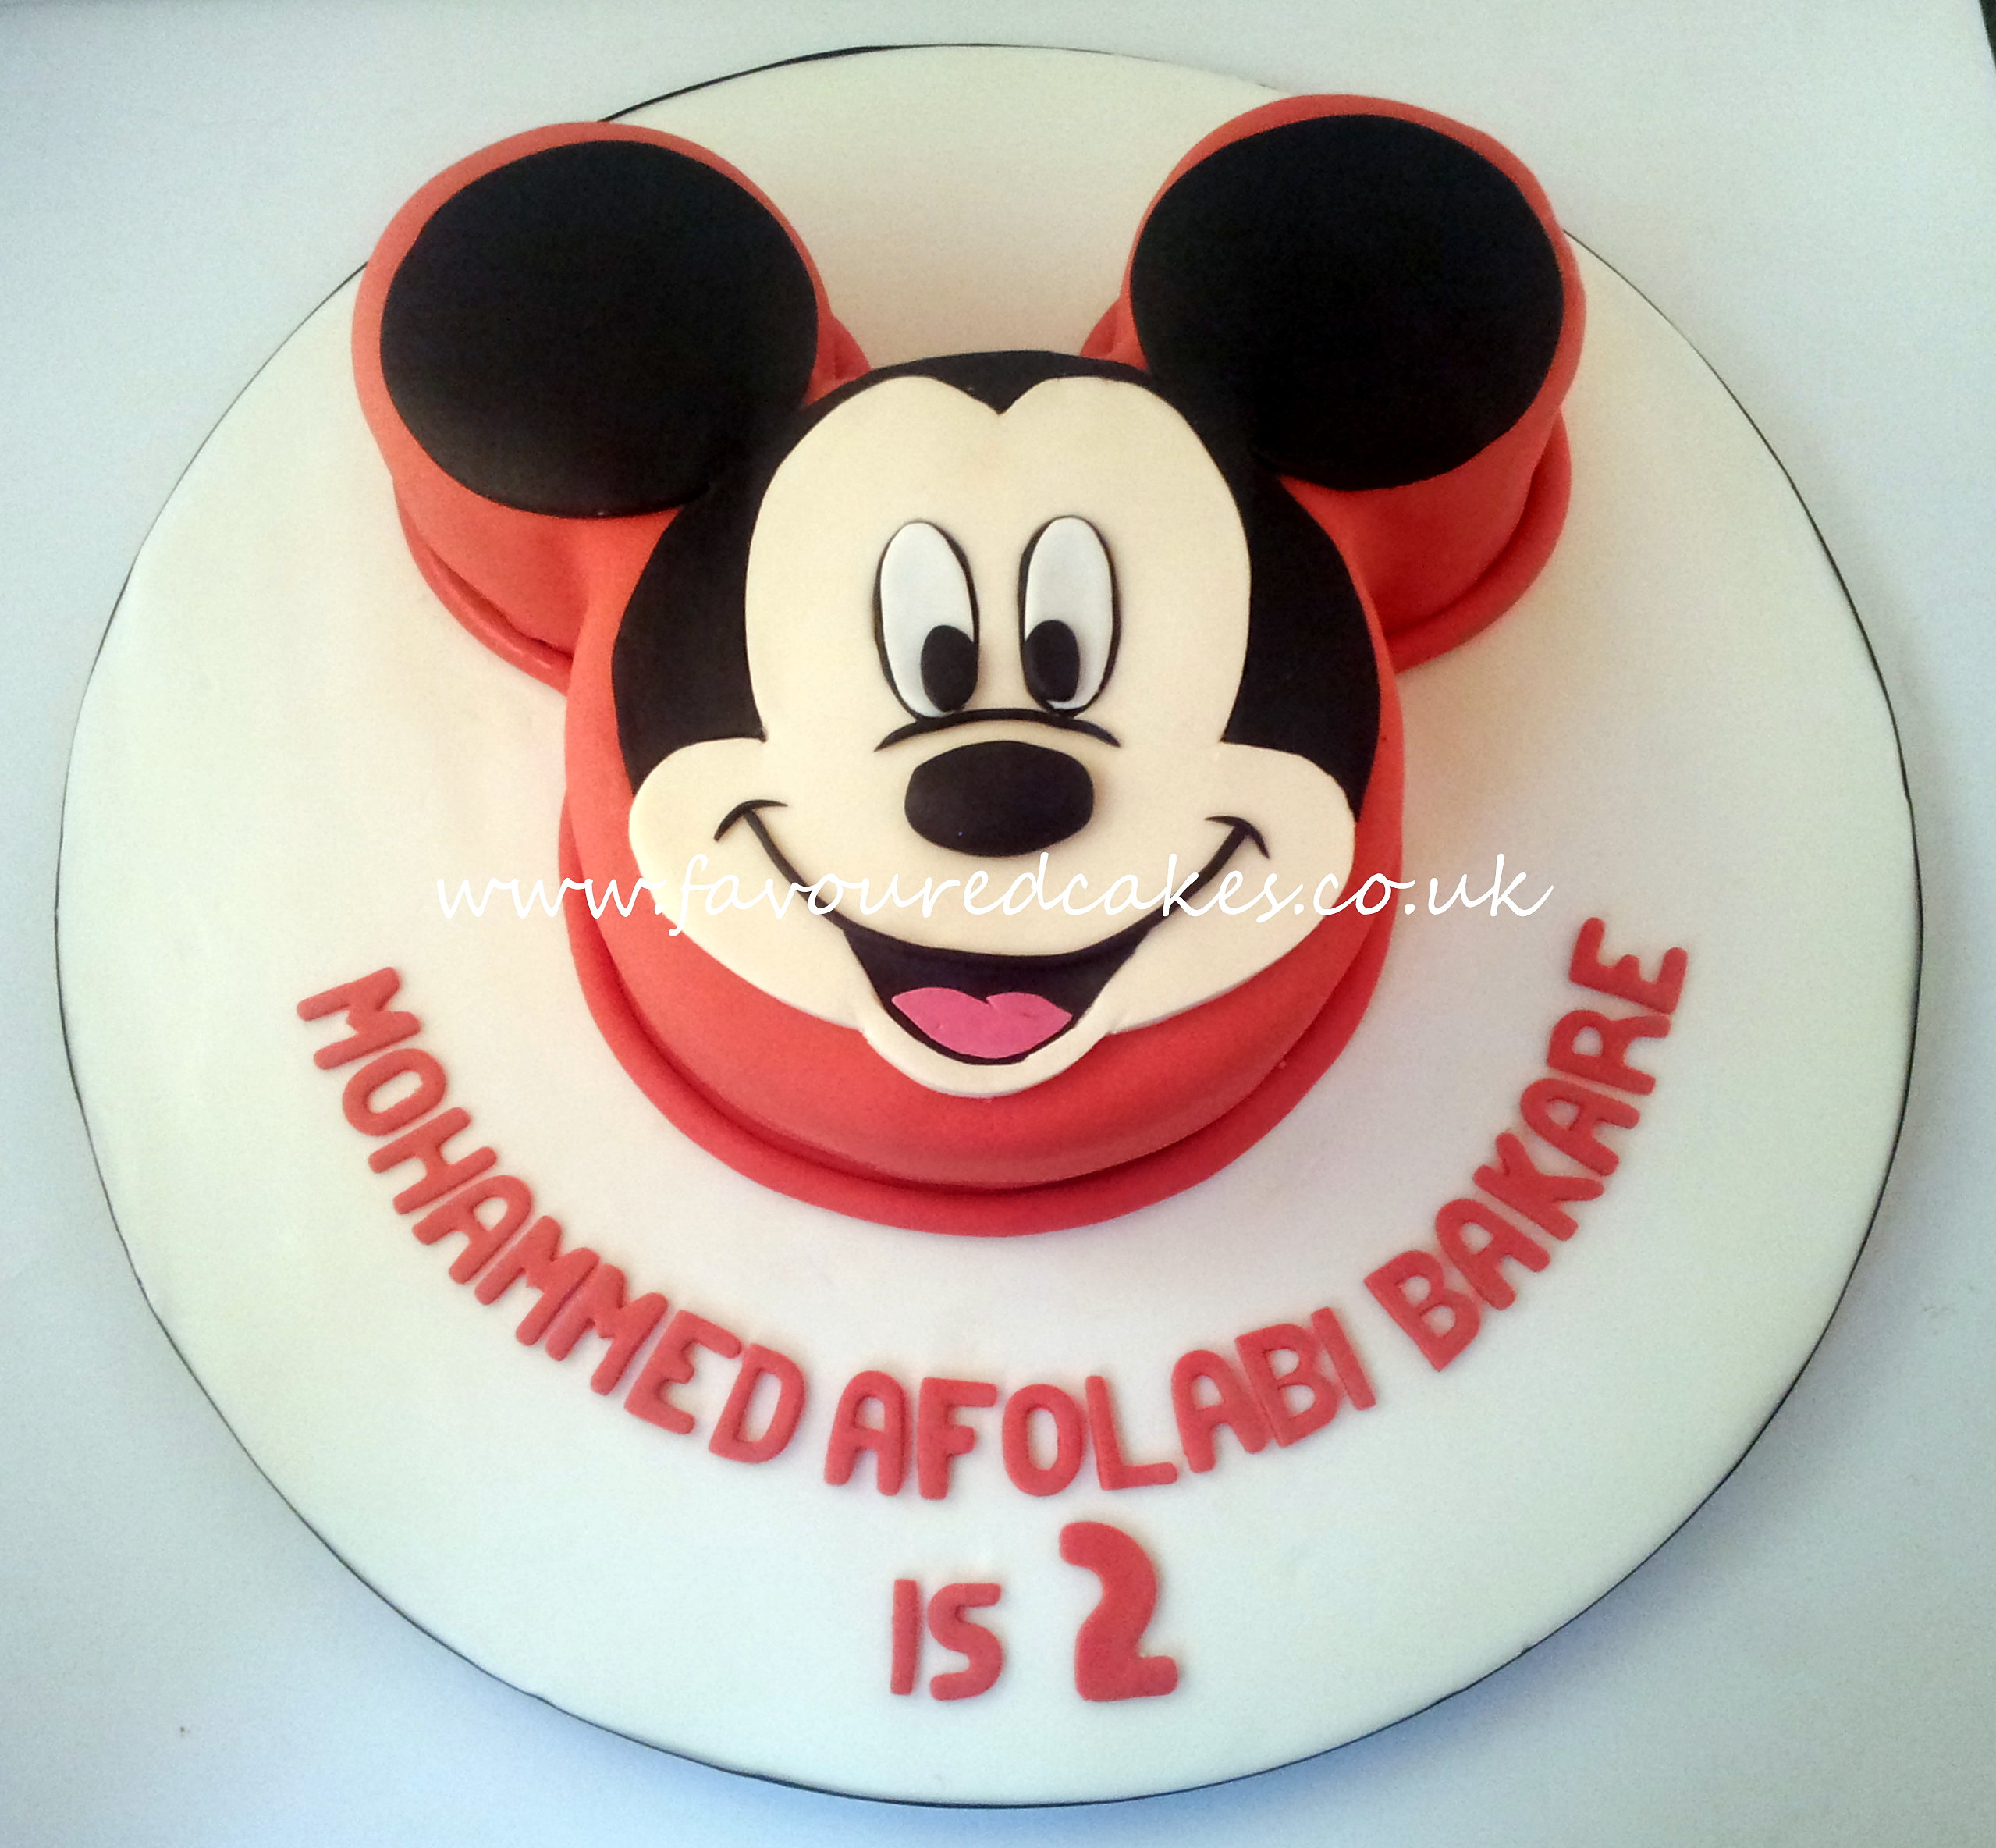 Pictures Of Mickey Mouse Face Cakes : Favoured Cakes, Belvedere, Bexley, Kent Mickey Mouse ...